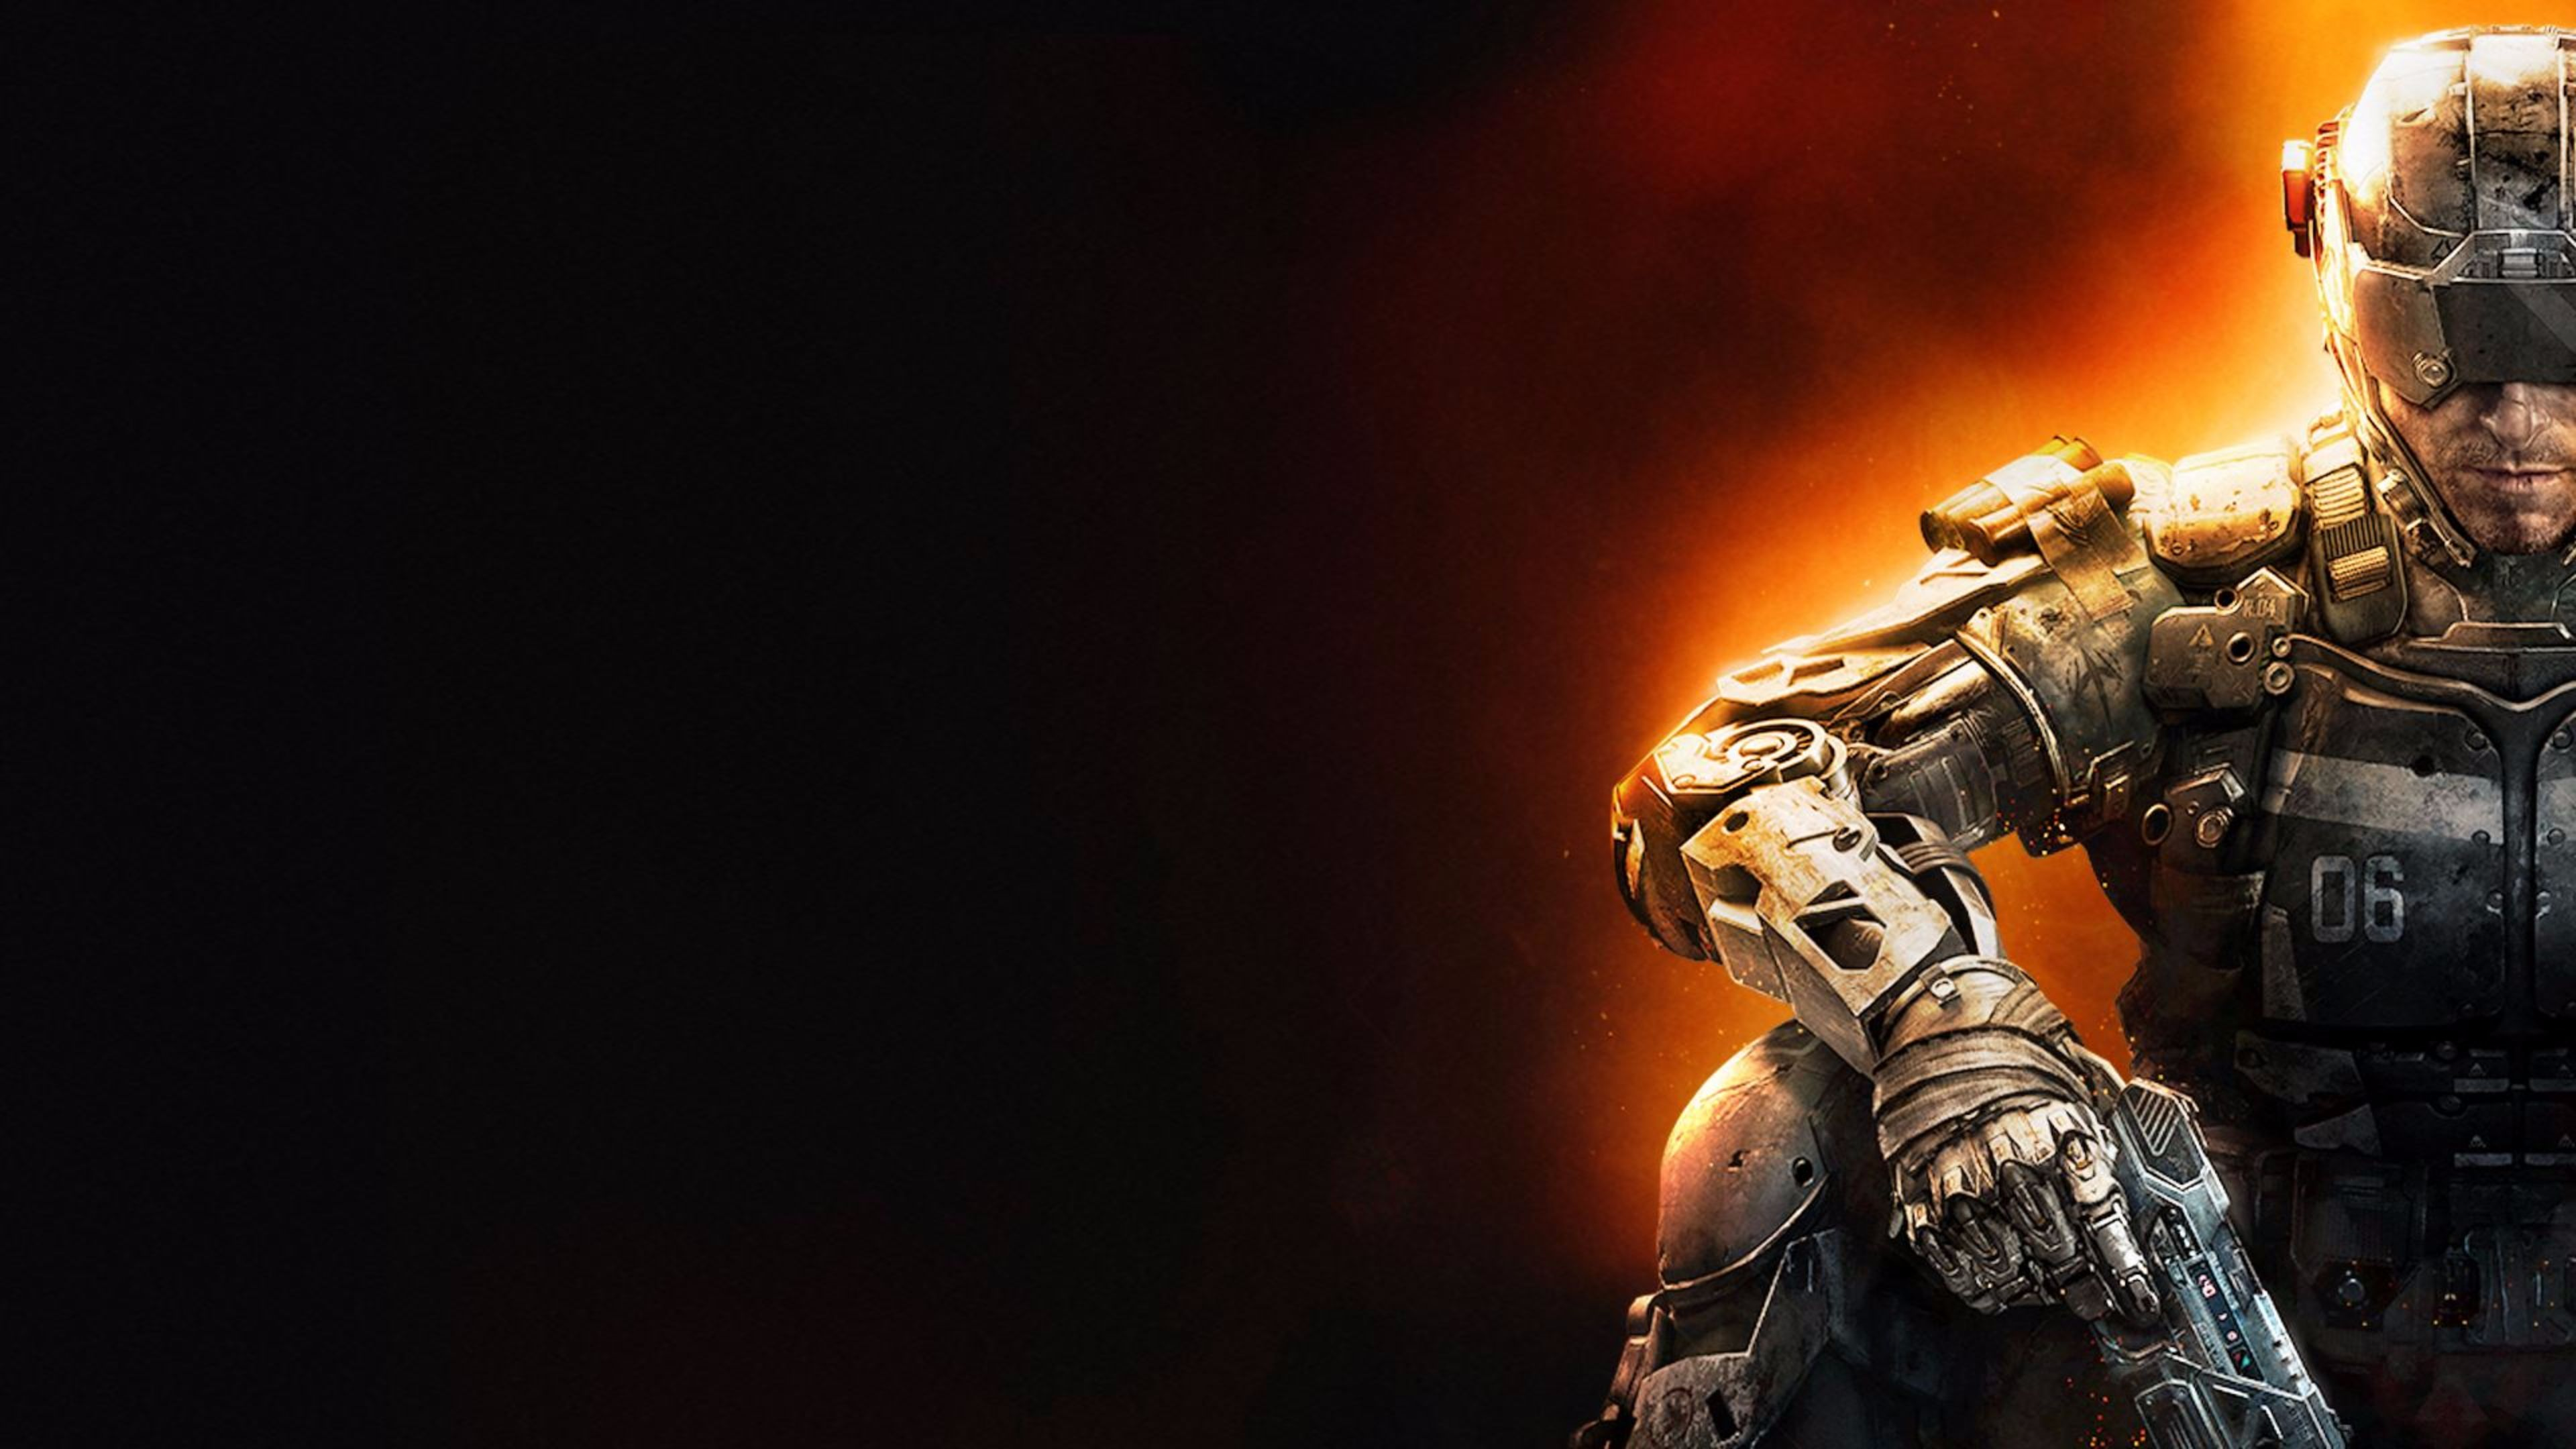 Bo3 Wallpaper Posted By Ryan Sellers